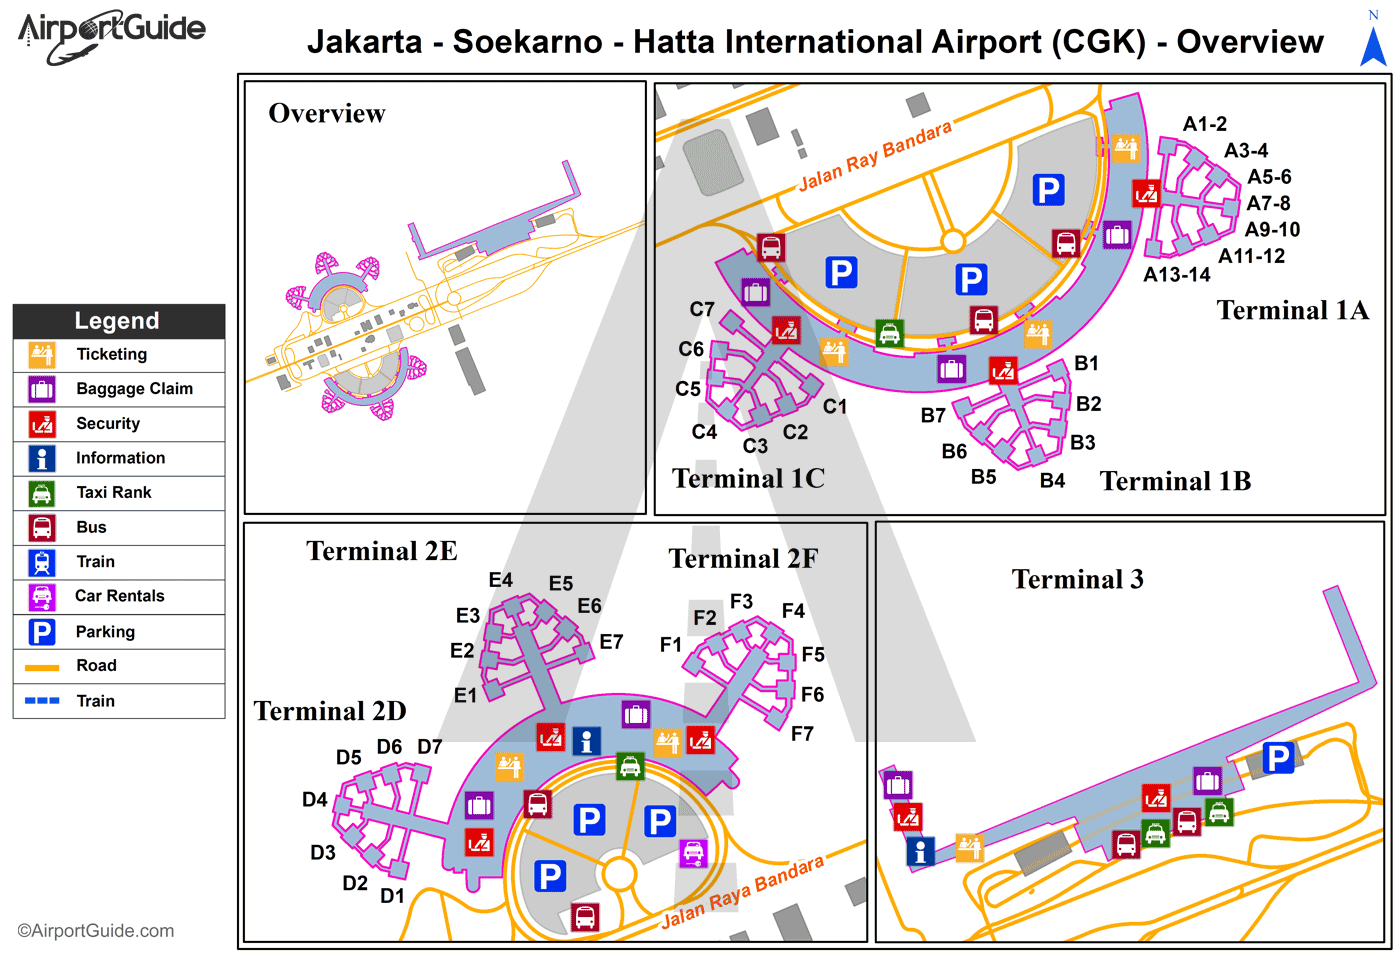 Jakarta - Soekarno-Hatta International (CGK) Airport Terminal Map - Overview